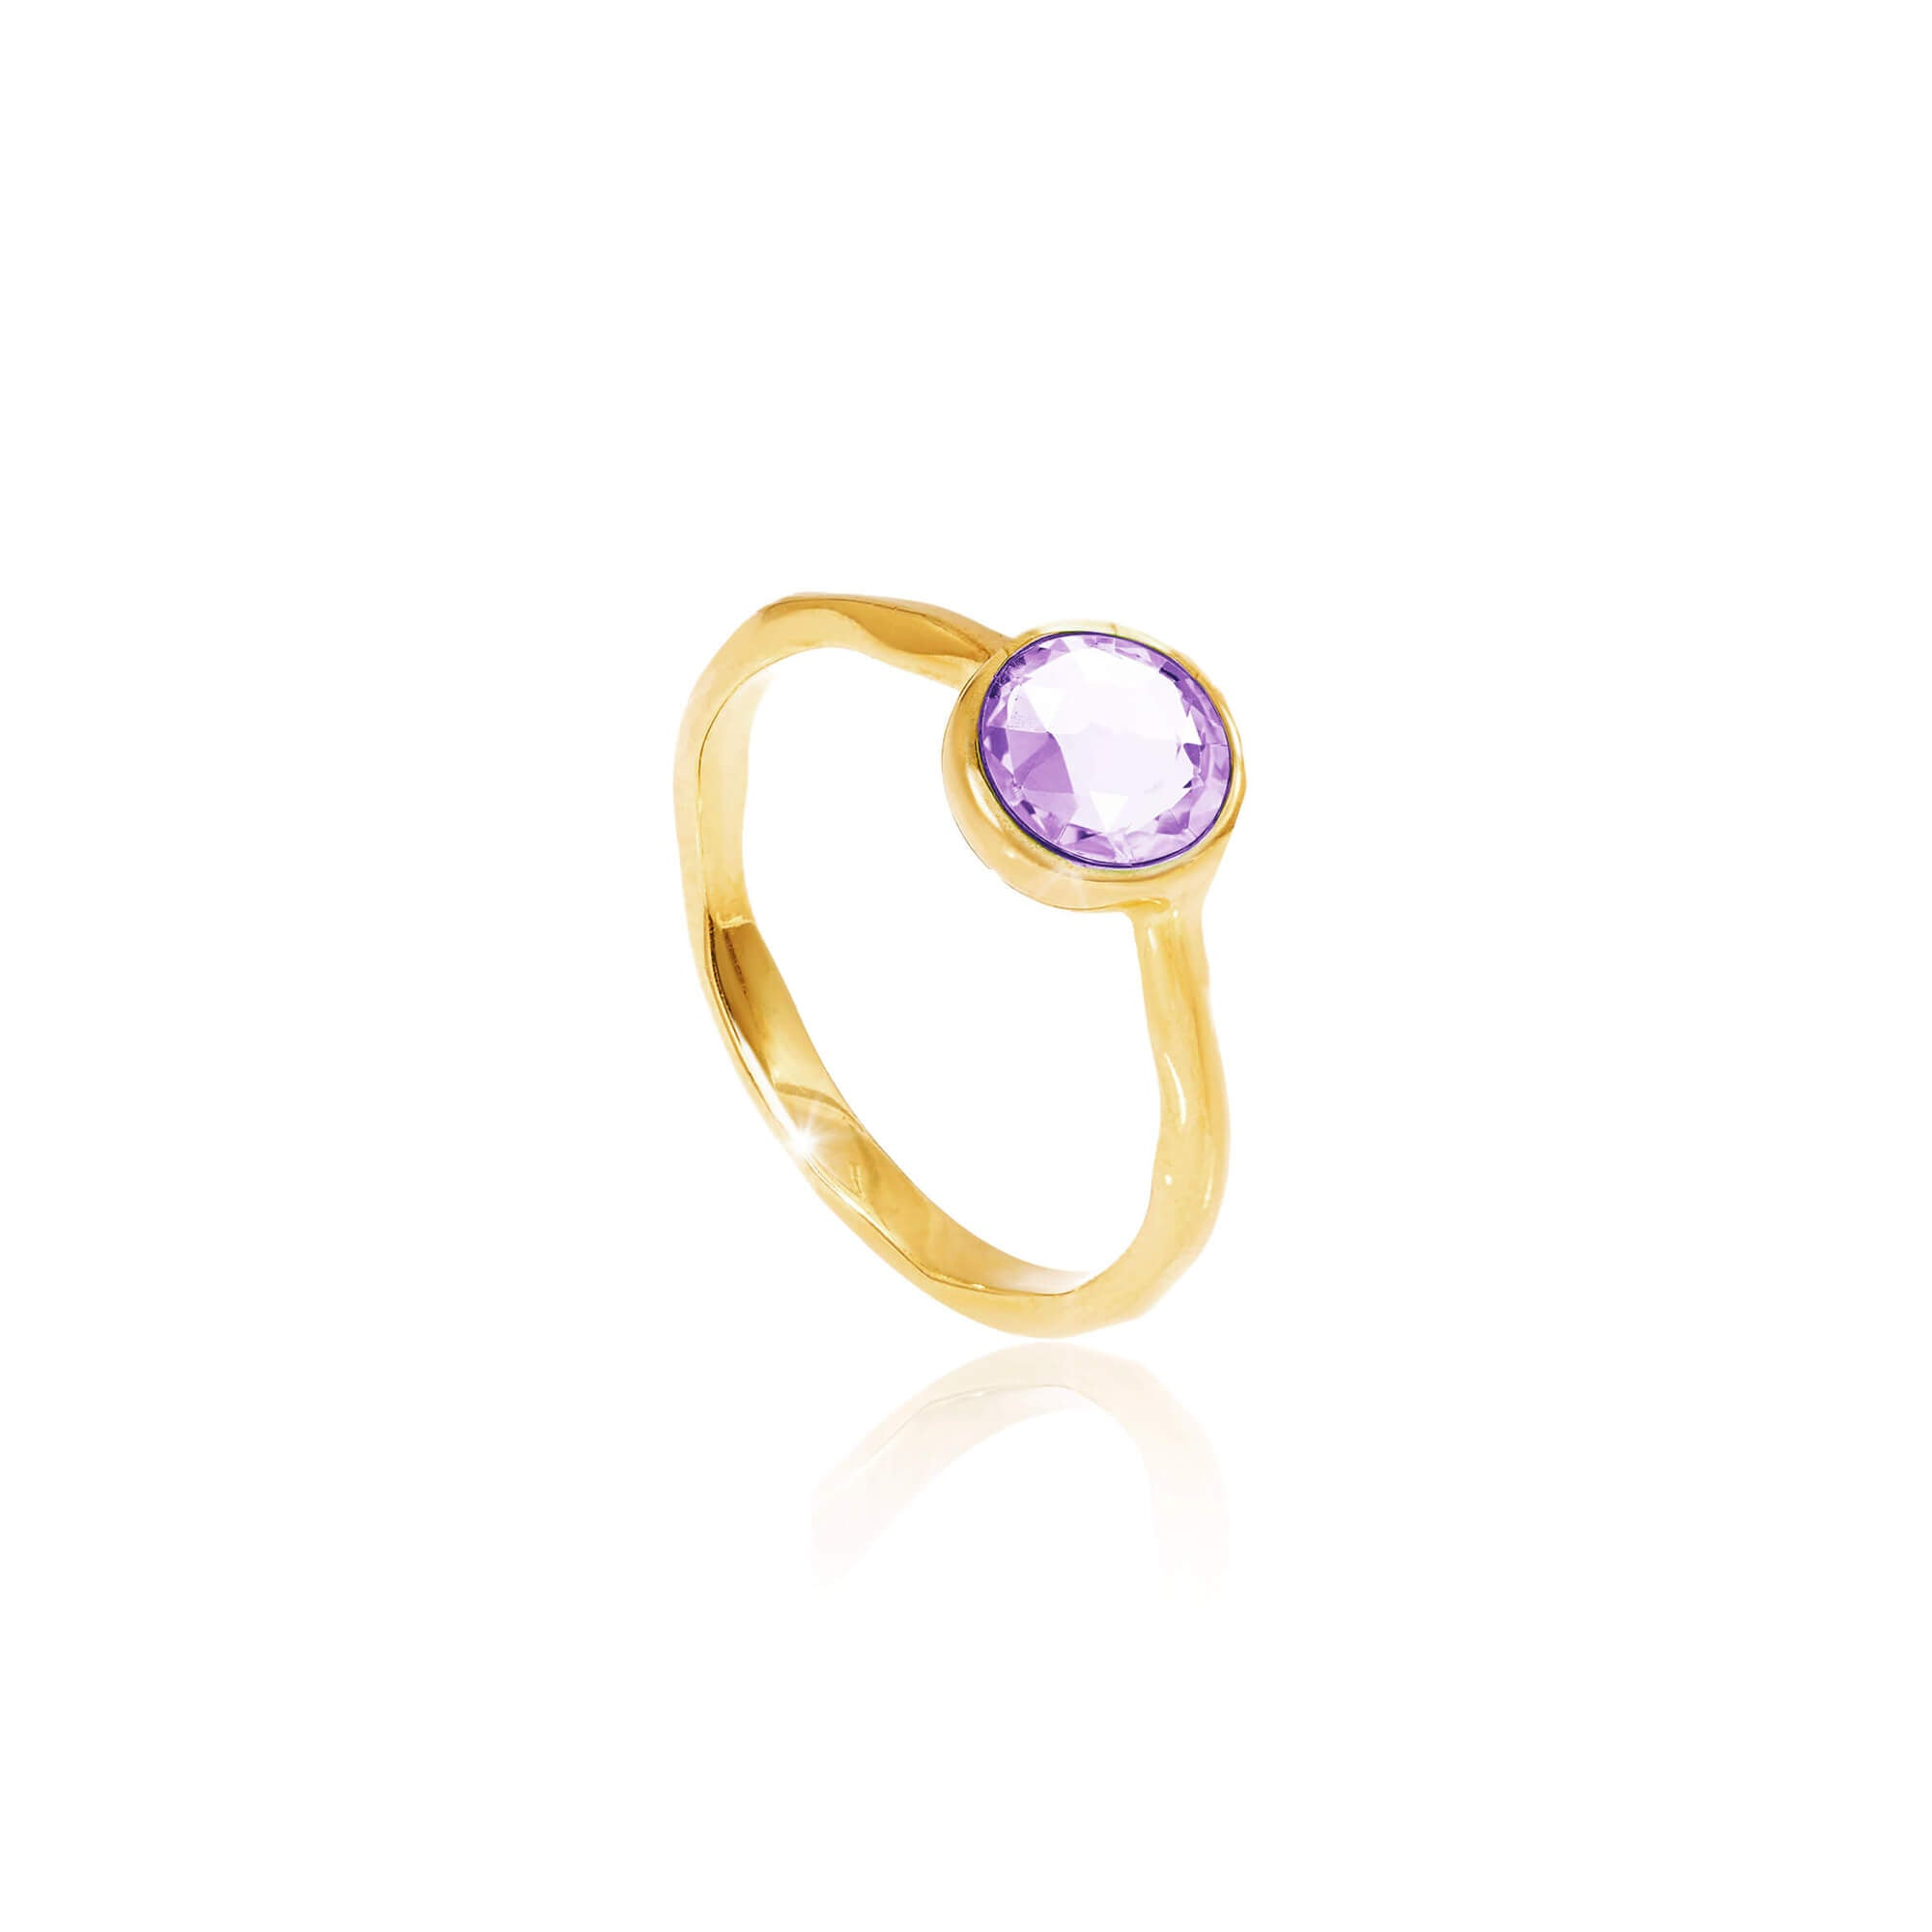 jewelery diamond rings and il women amethyst p white ringwhite february gold fullxfull birthstone qsvz ring